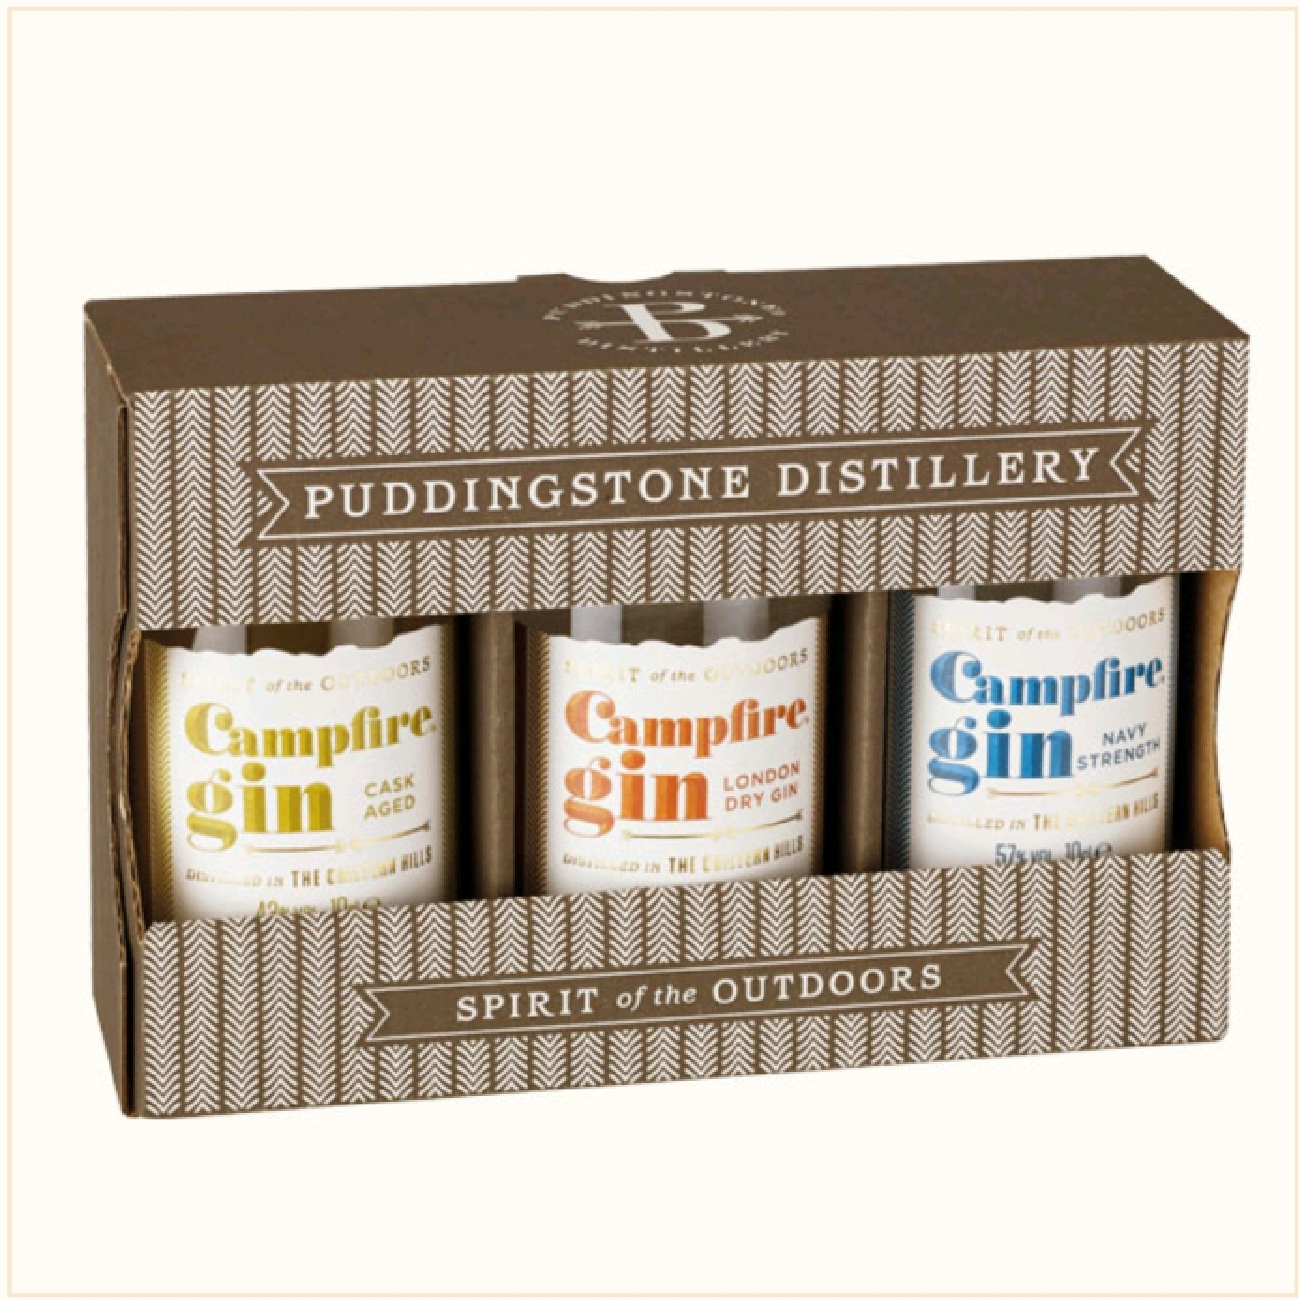 Campfire Gin Gift pack